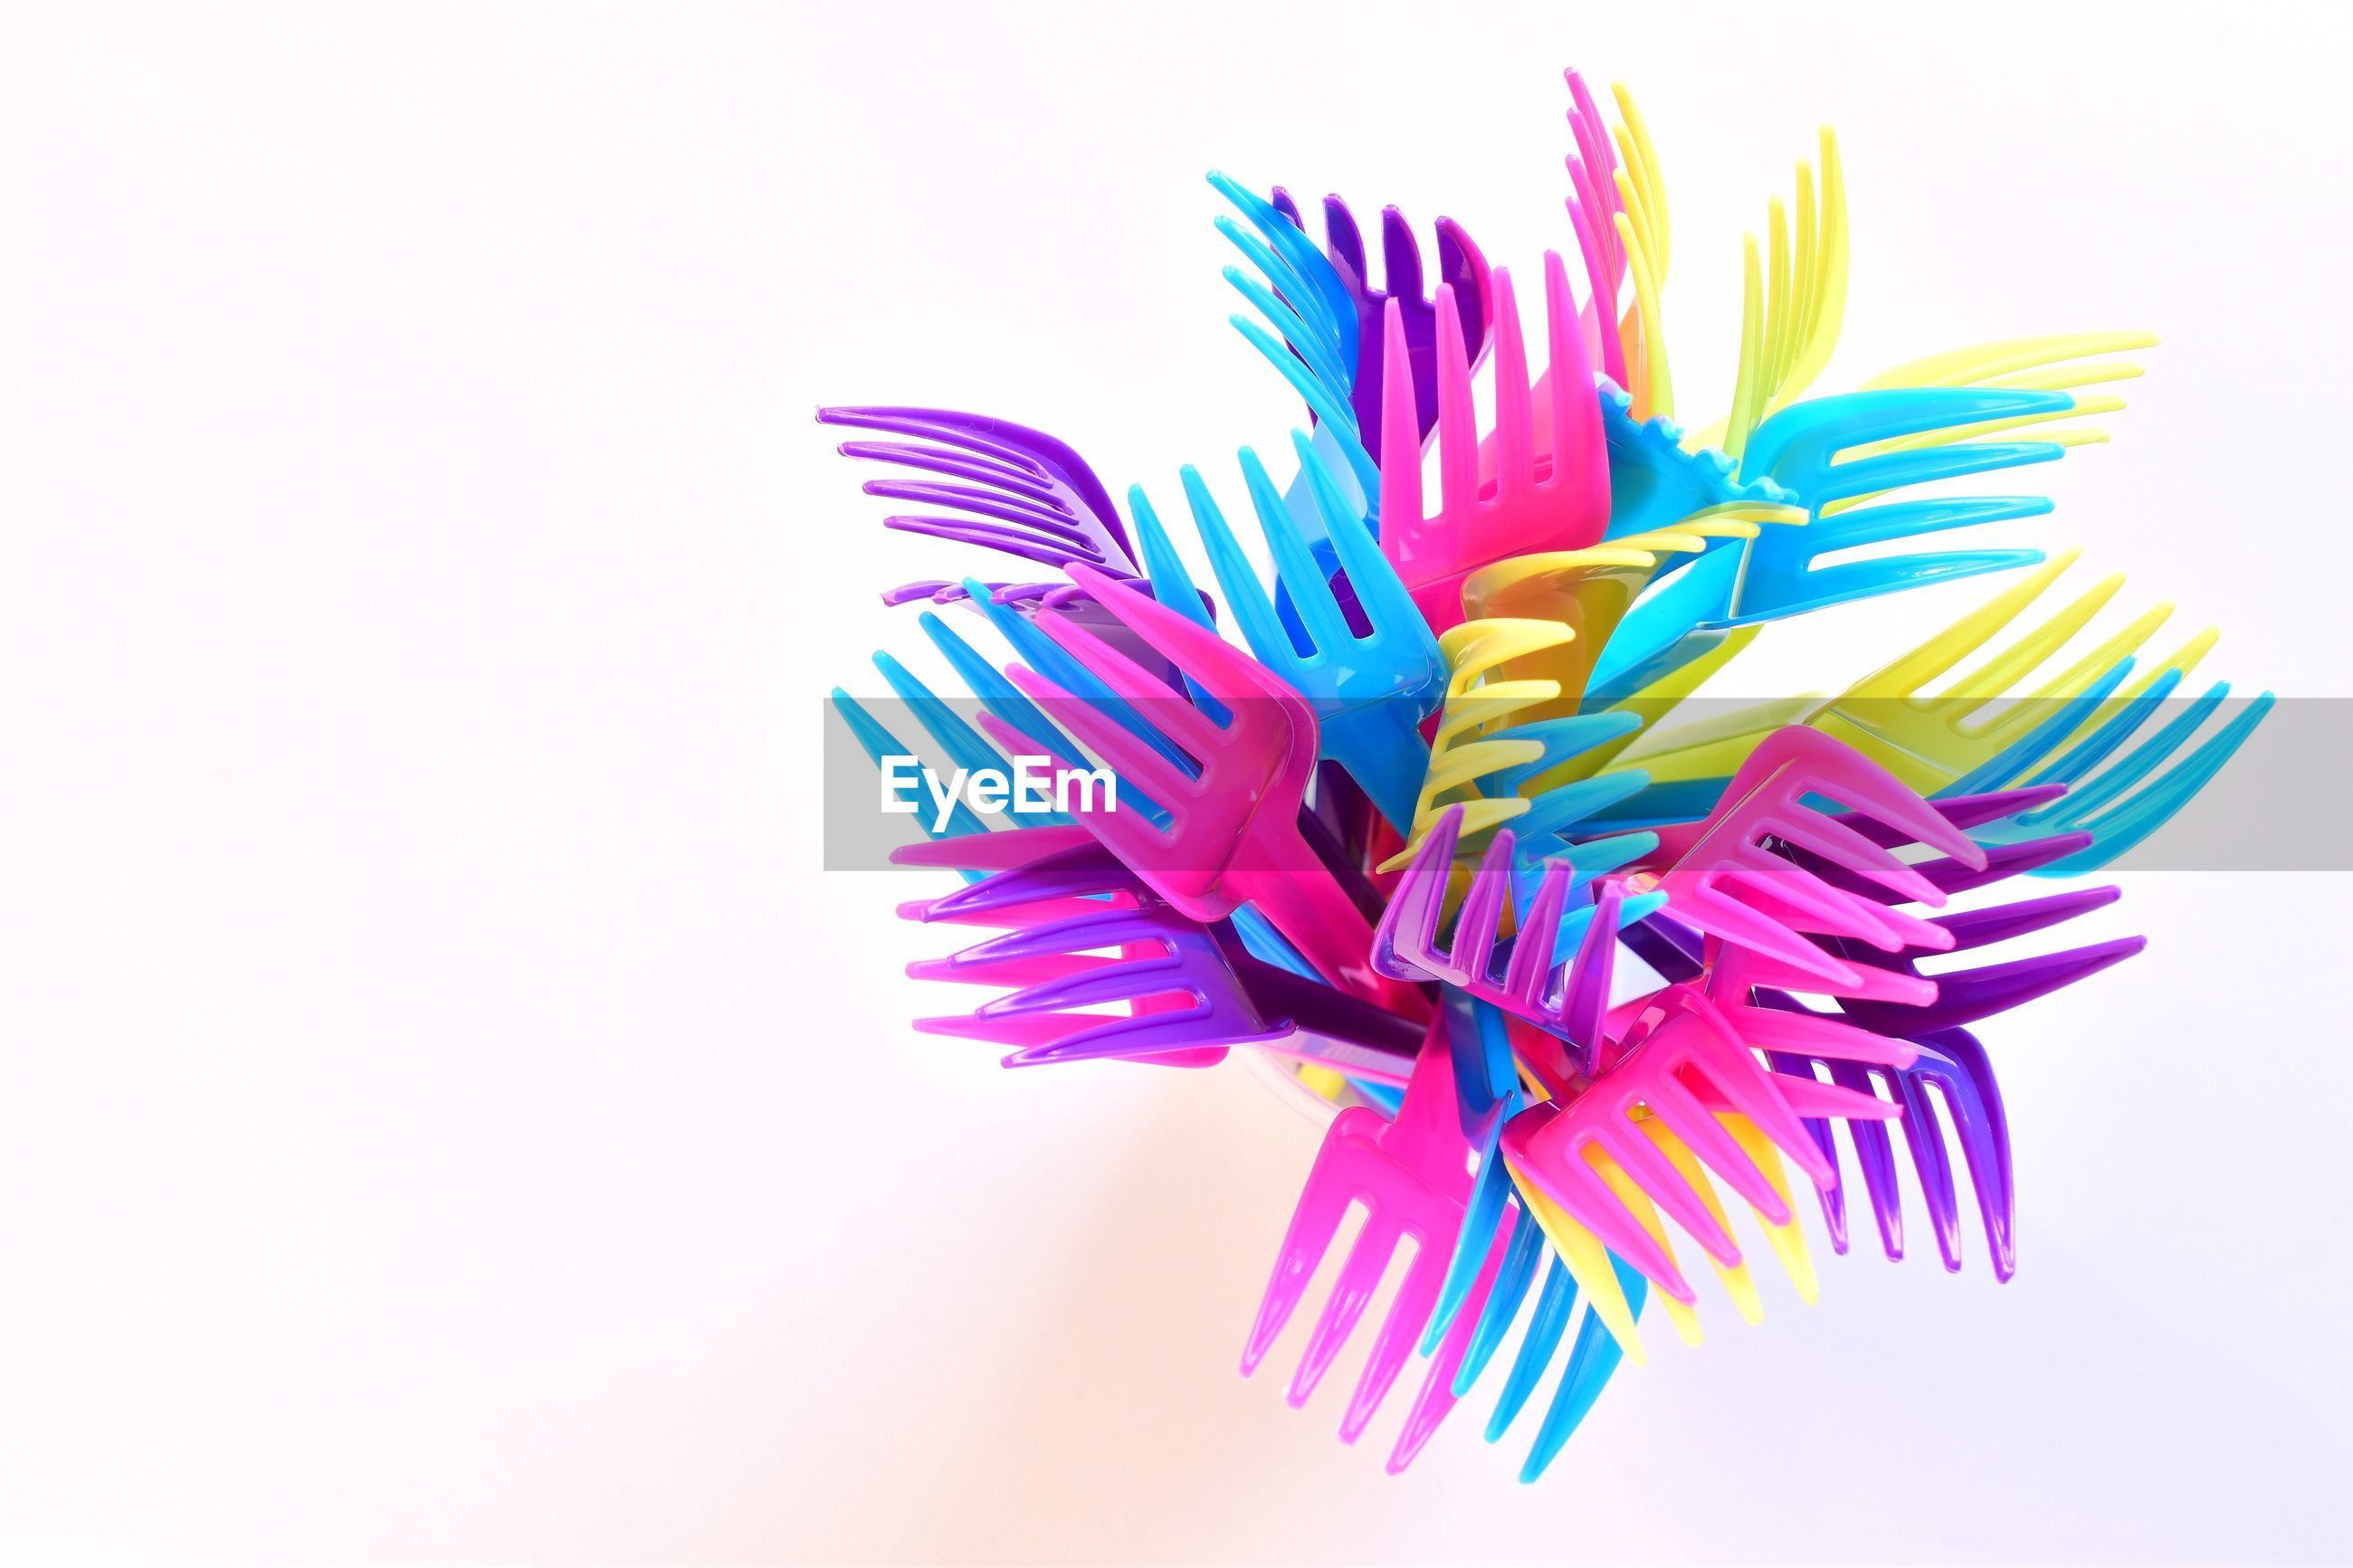 Directly above shot of colorful forks on white background